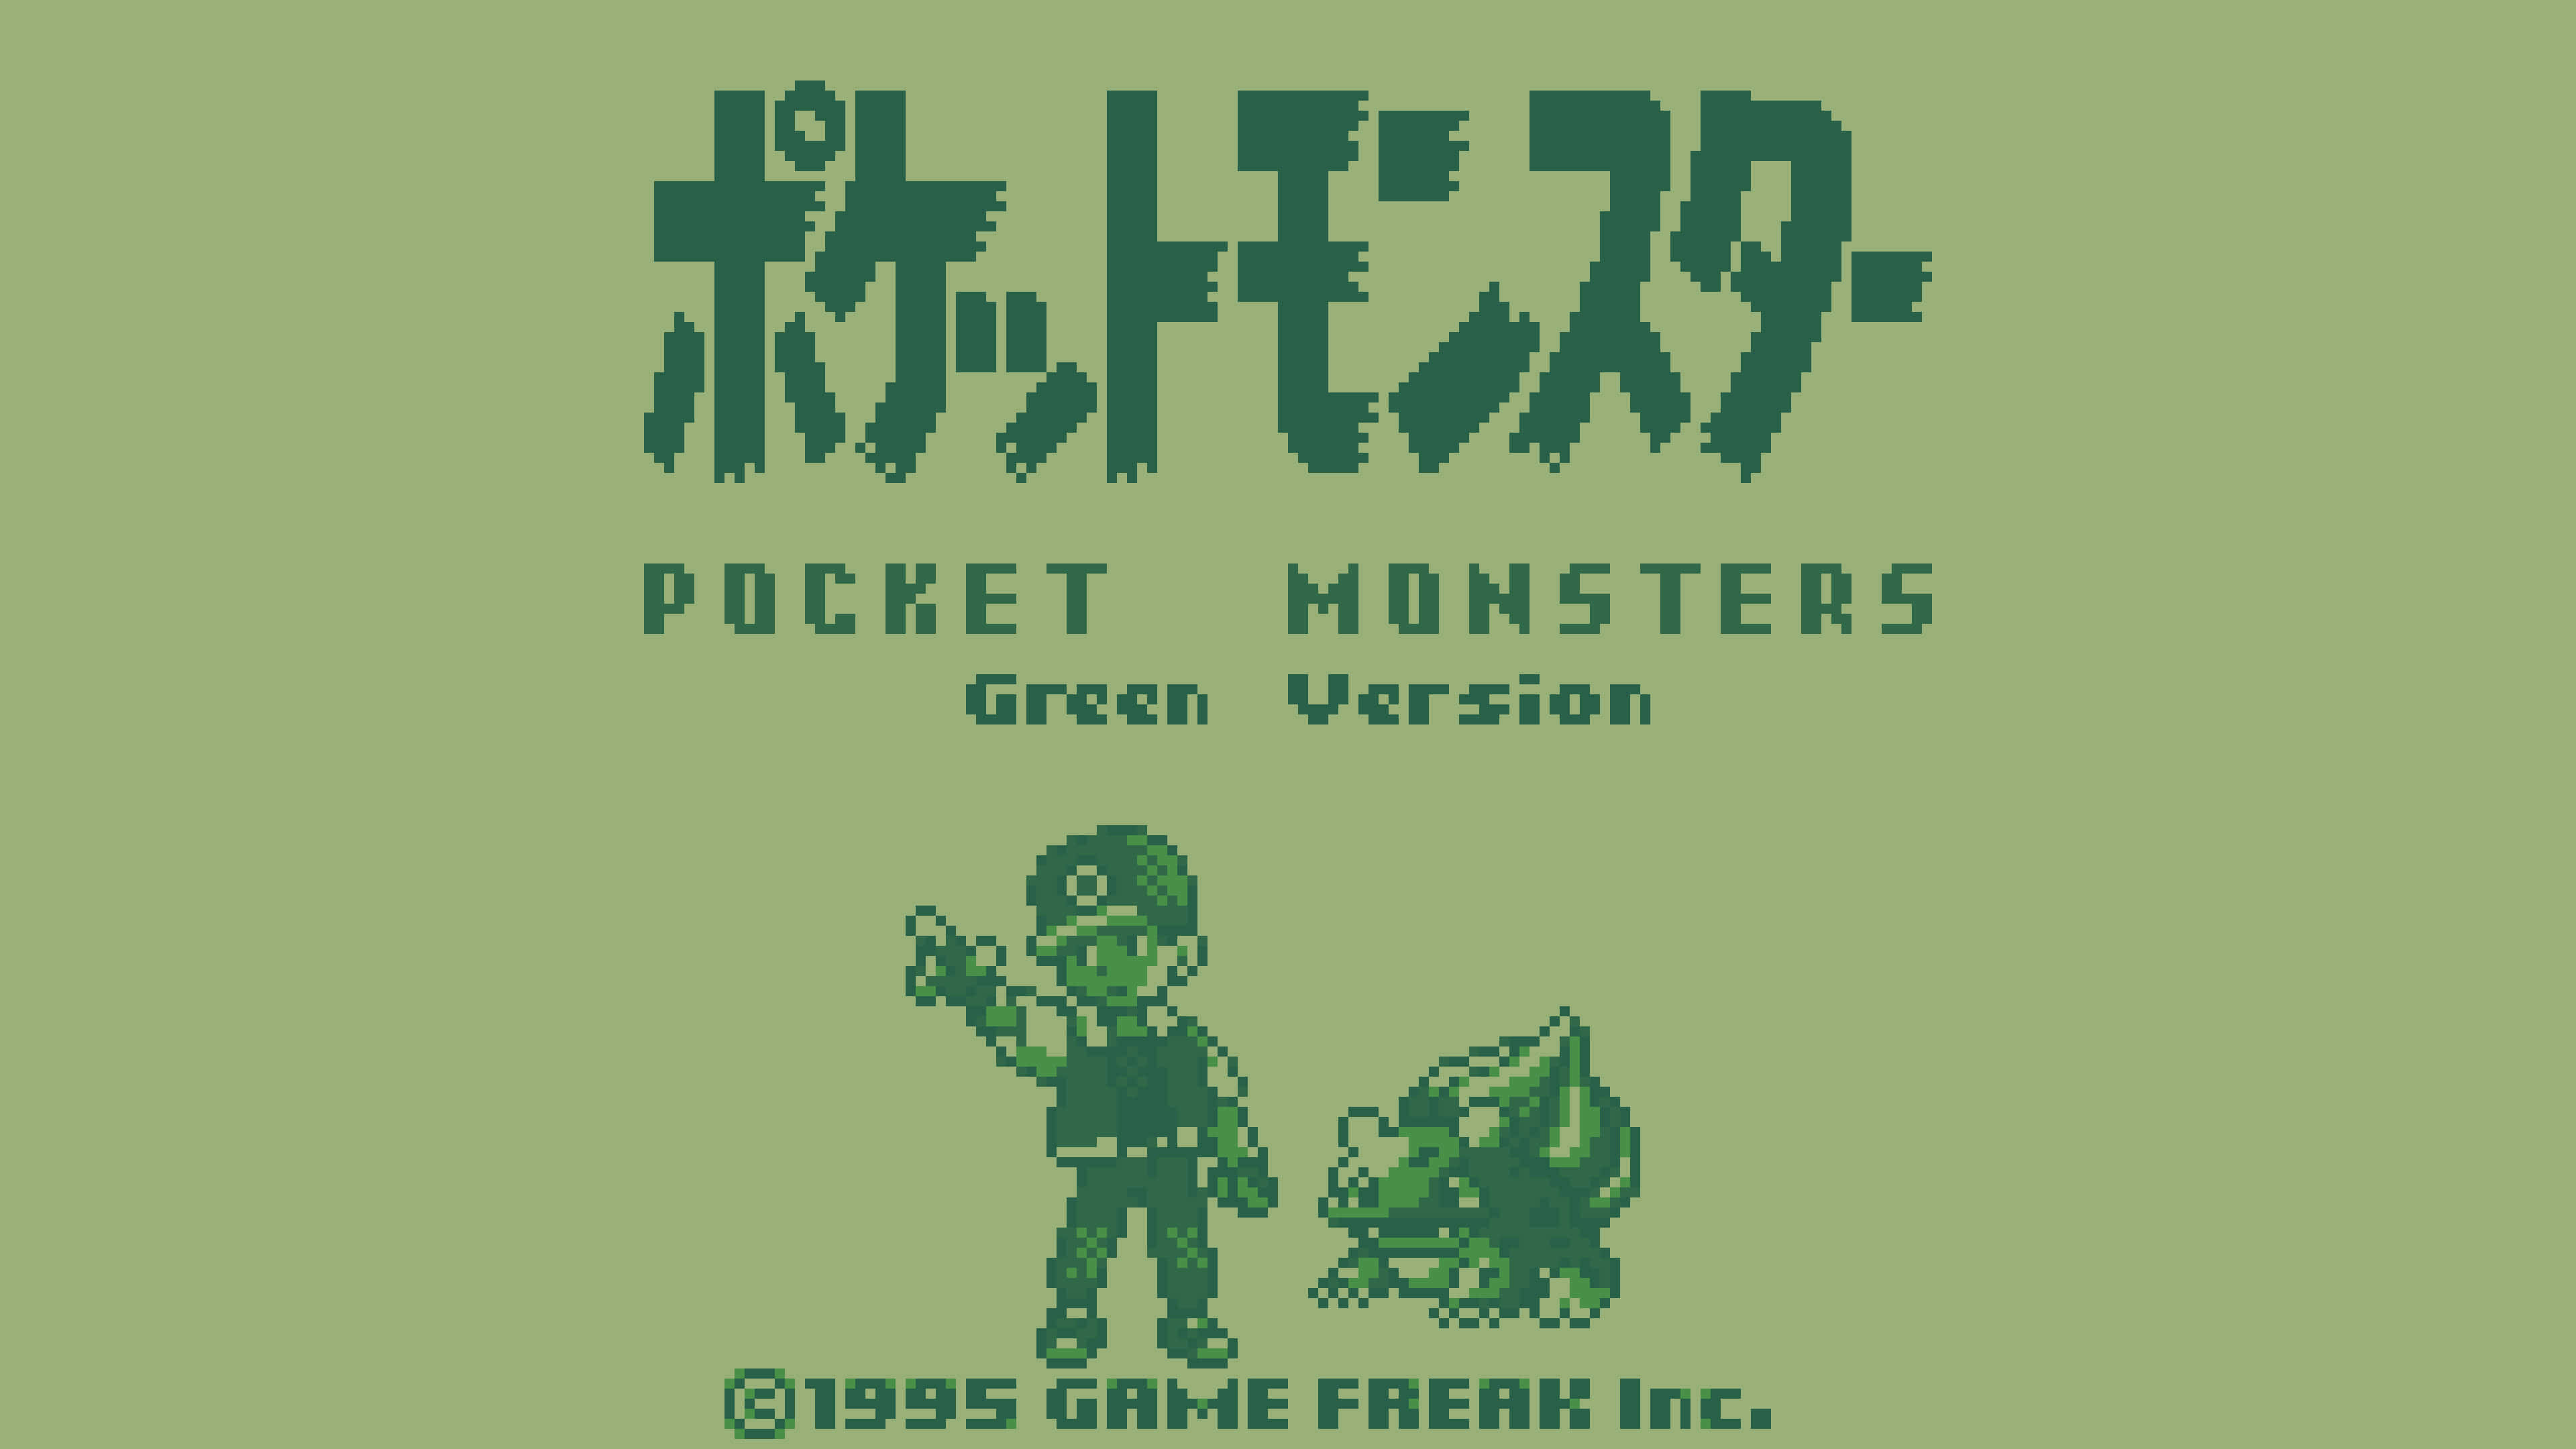 pokemon green pocket monsters 3ds screenshot uhd 4k wallpaper